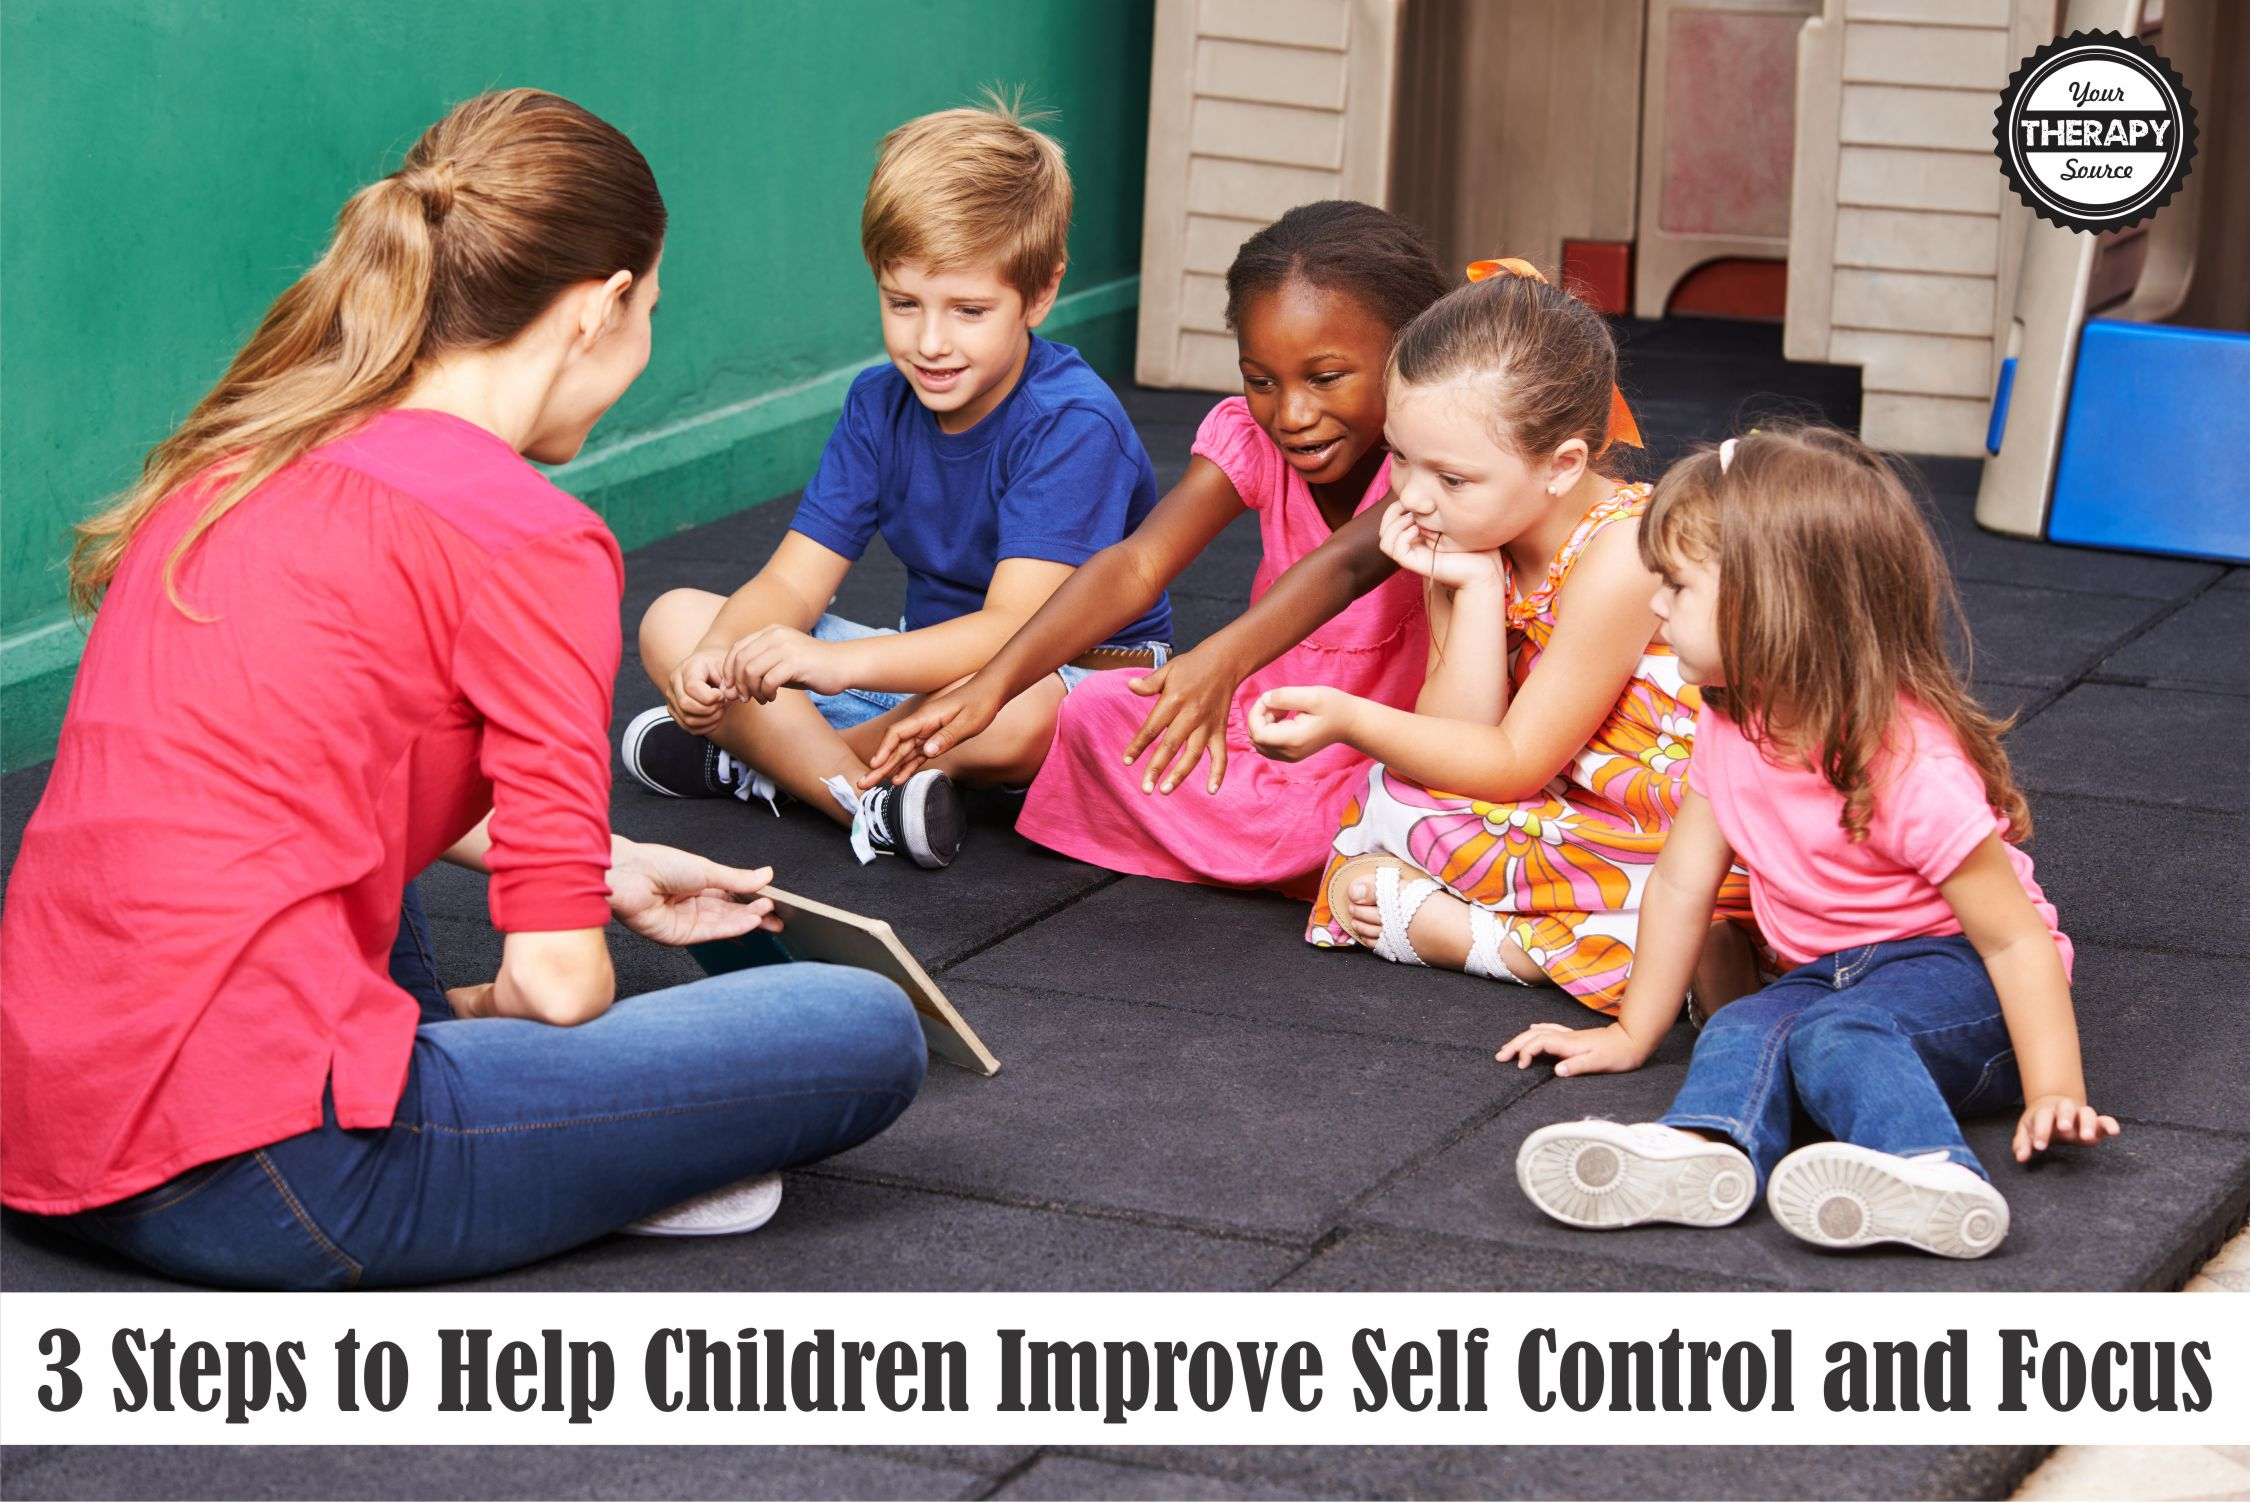 Help Kids 3 Steps To Help Children Improve Self Control And Focus Your